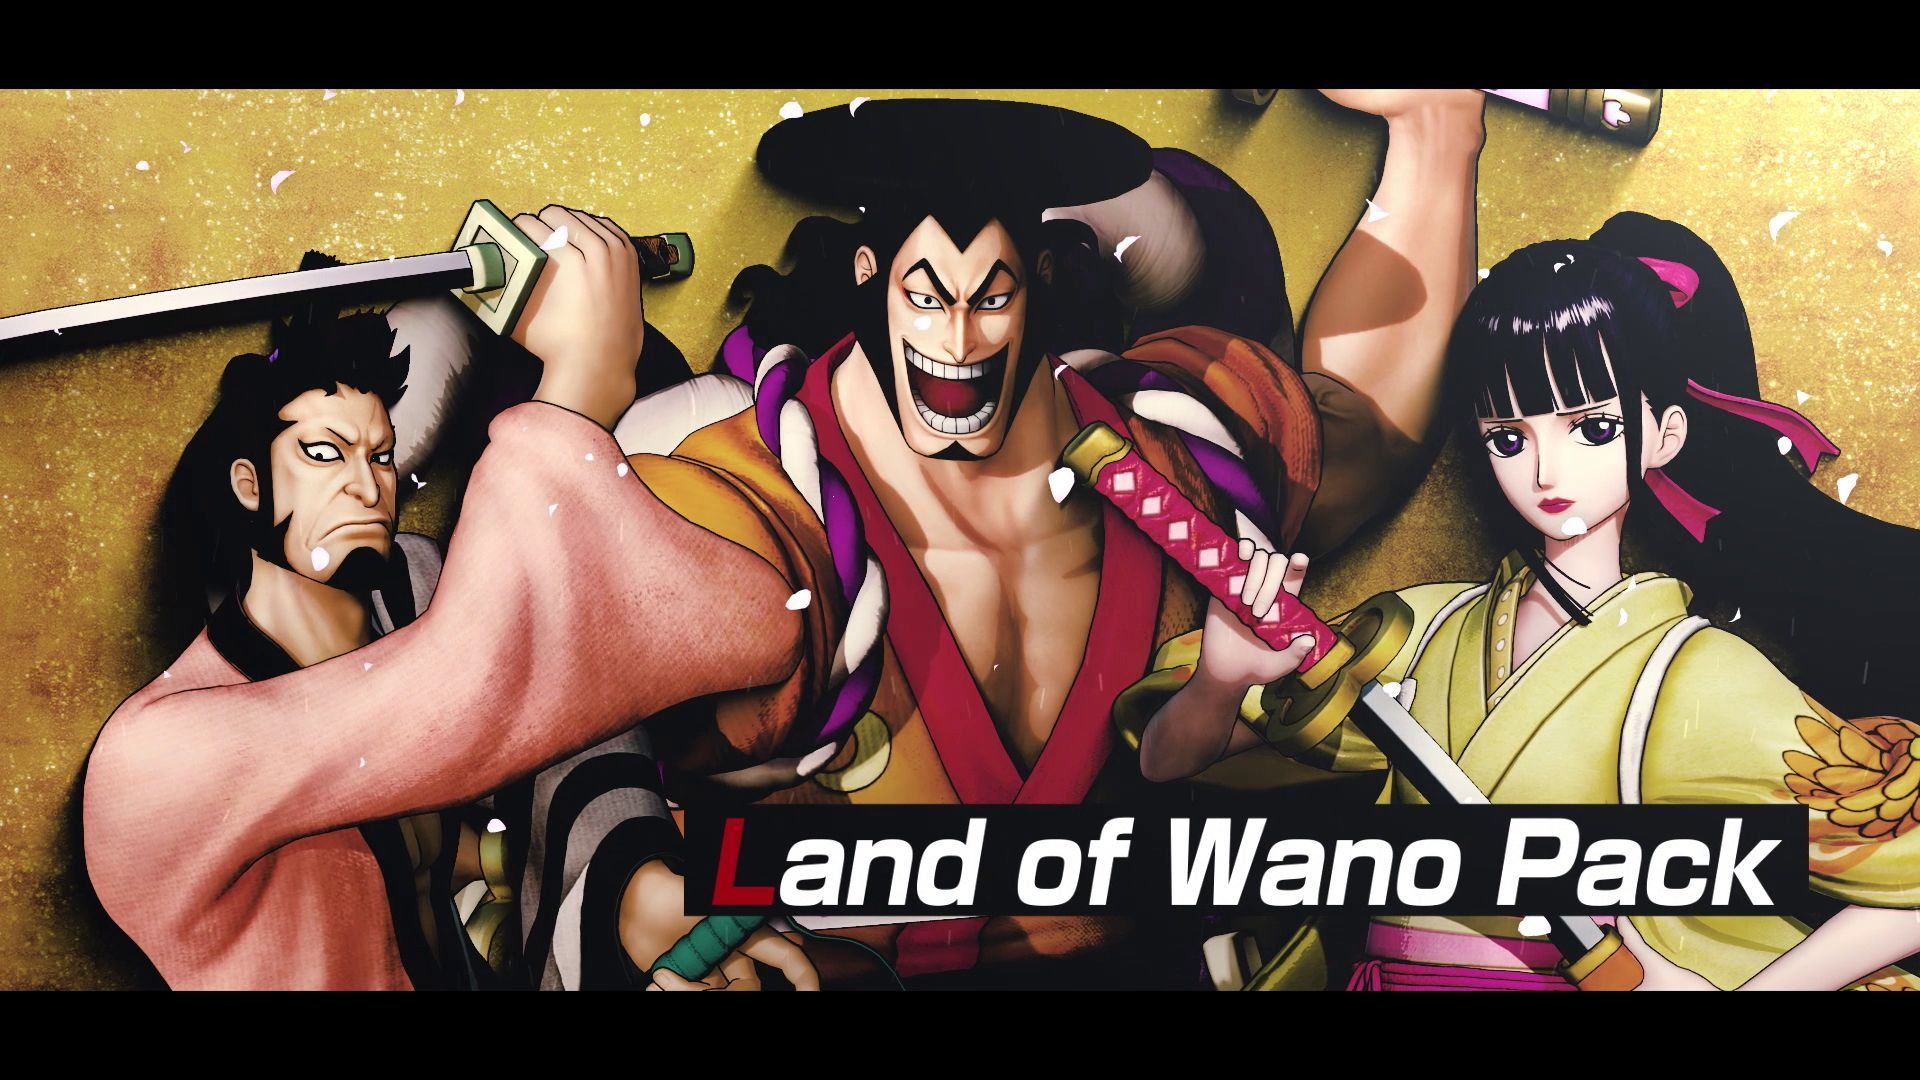 land of wano pack OPPW4